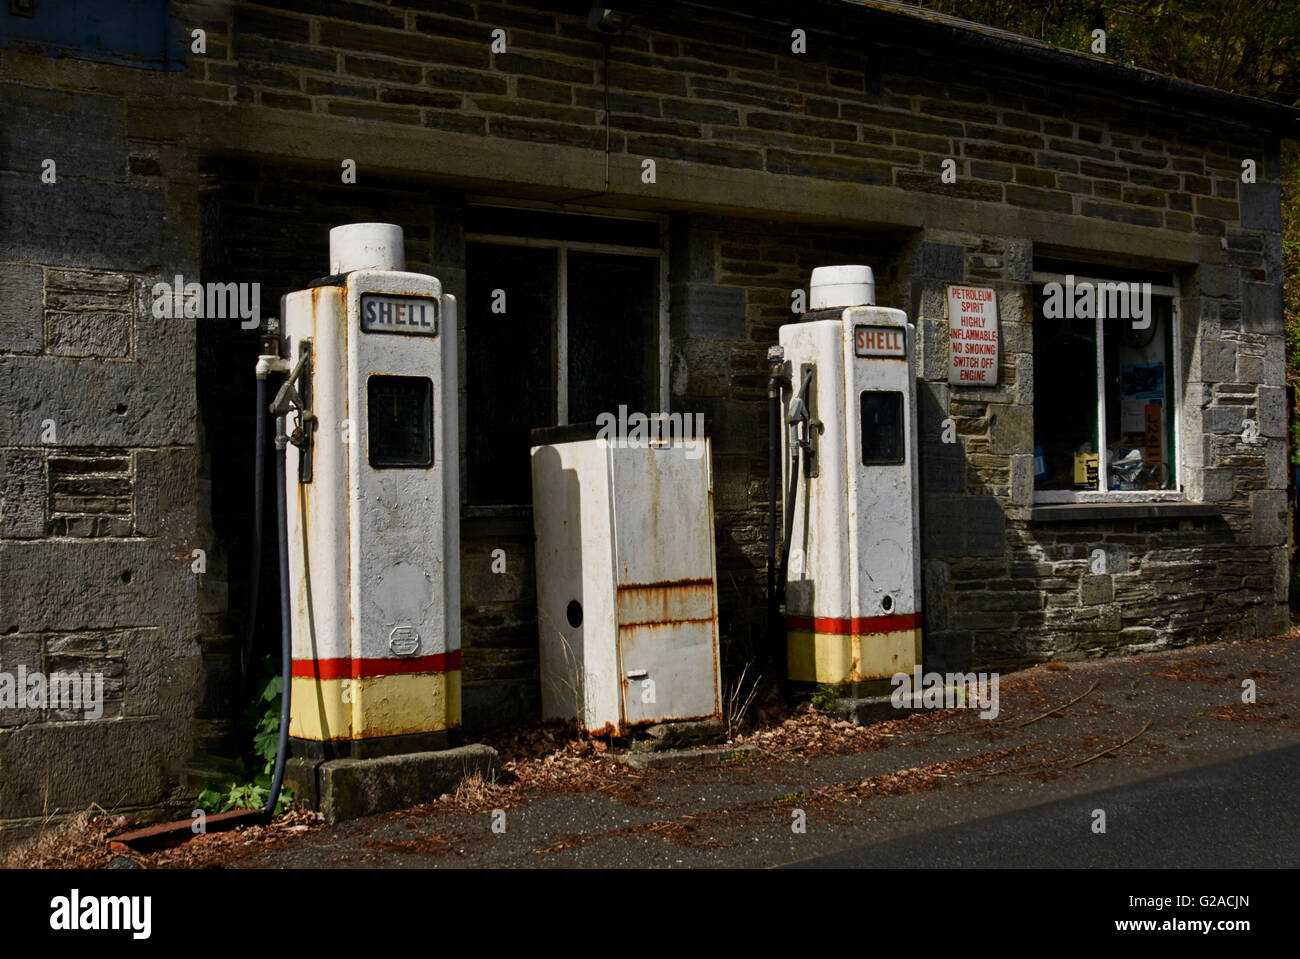 Abandoned and unused old petrol pumps. - Stock Image